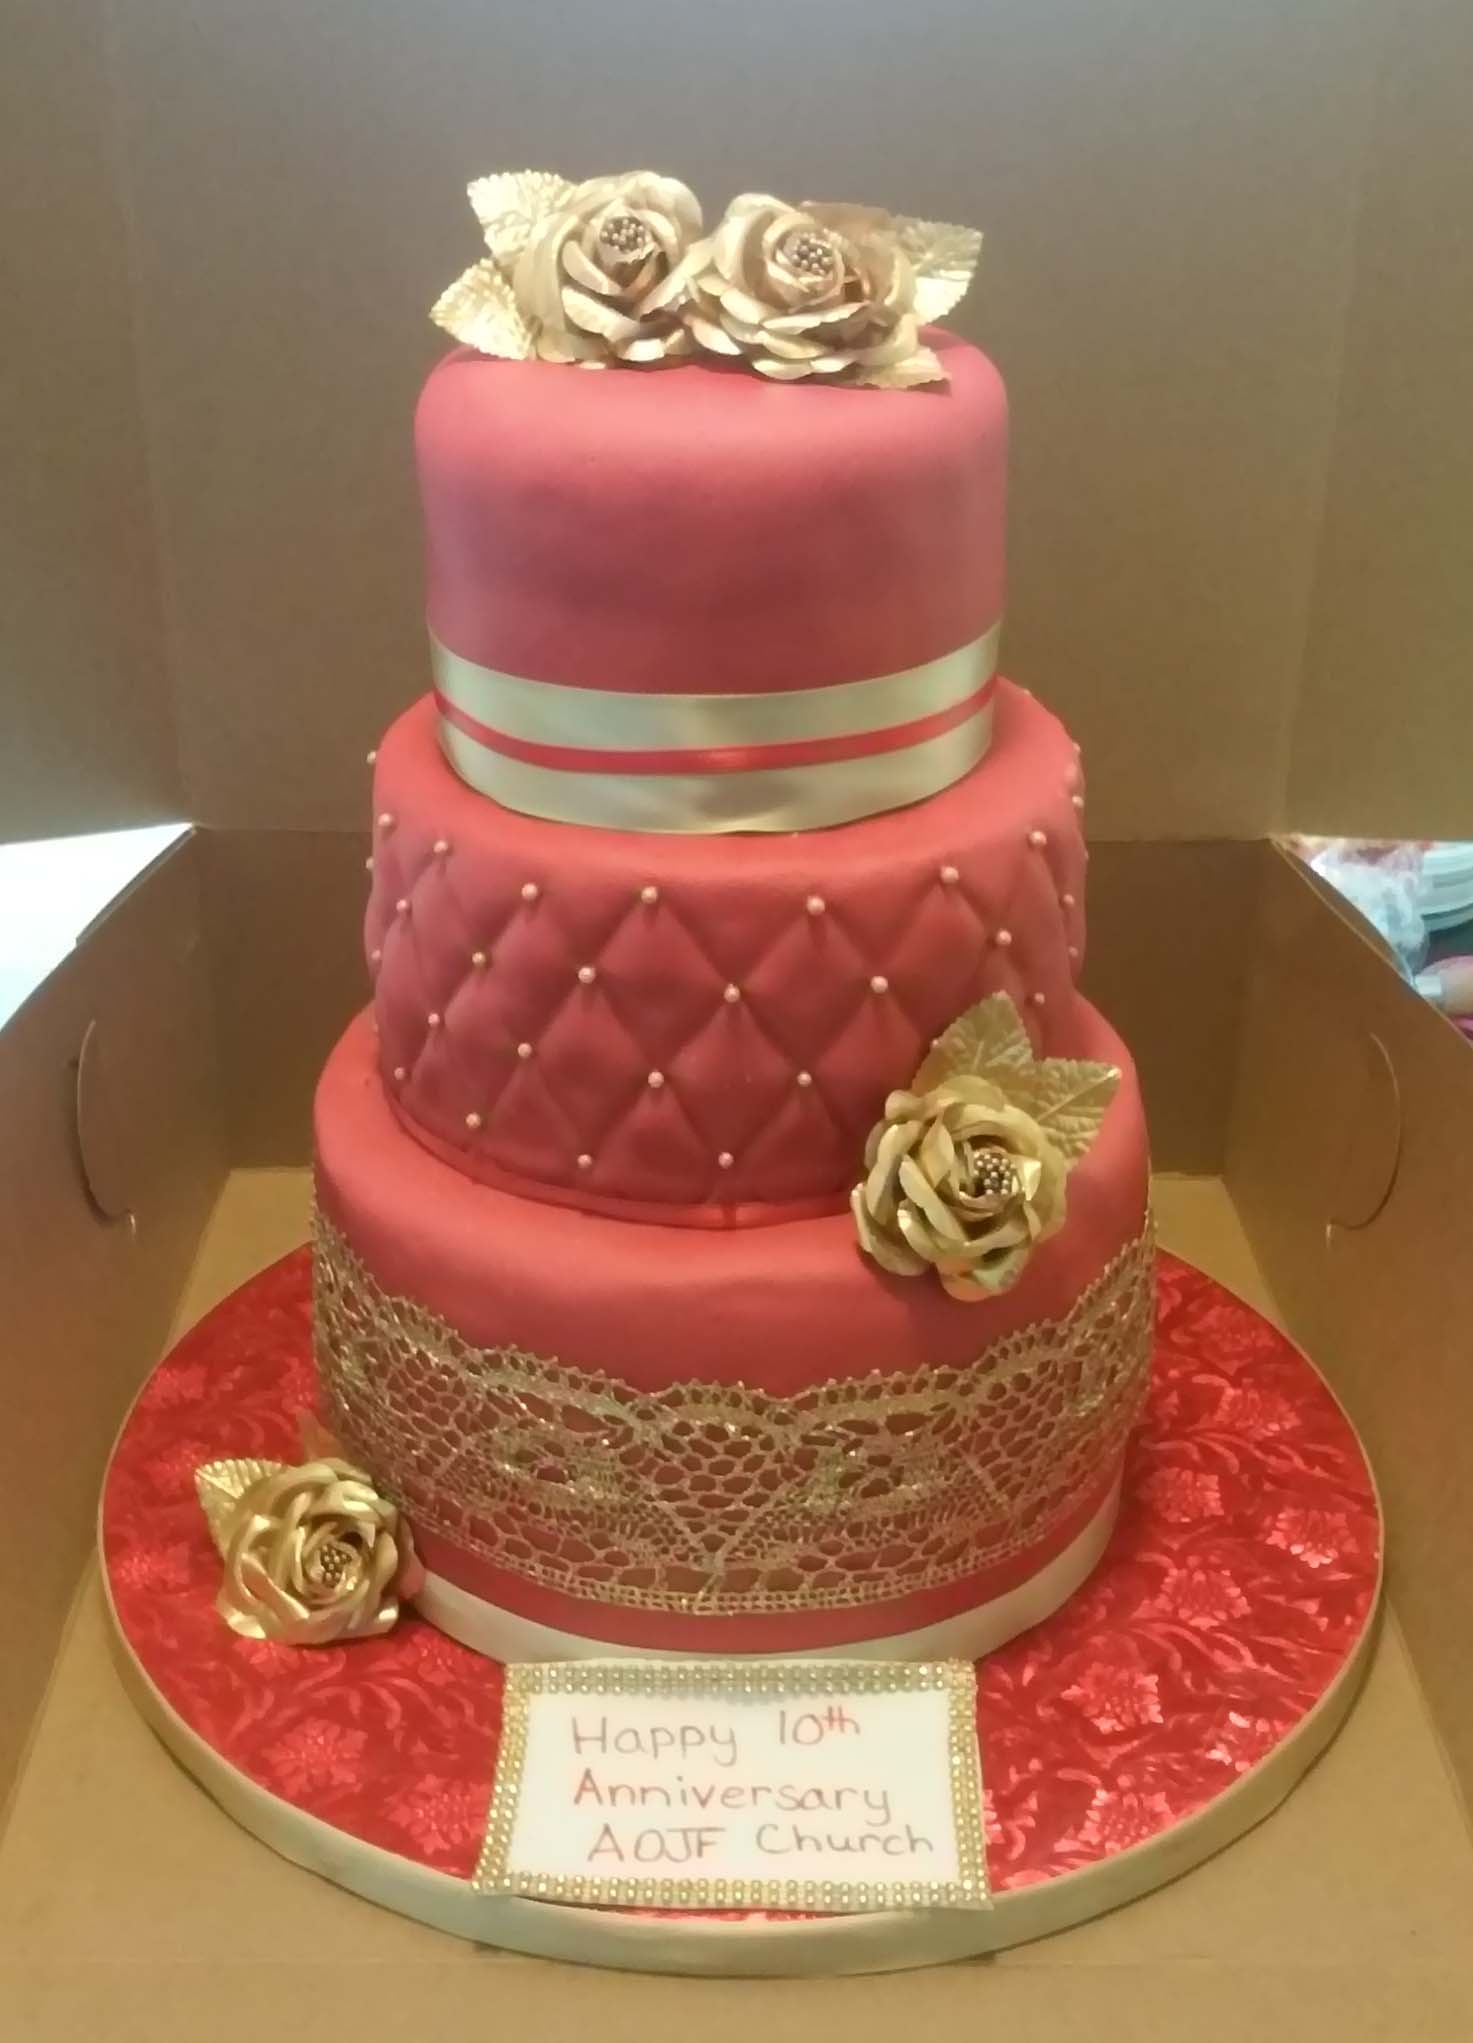 3 Tier Red And Gold Themed 10Th Anniversary Cake